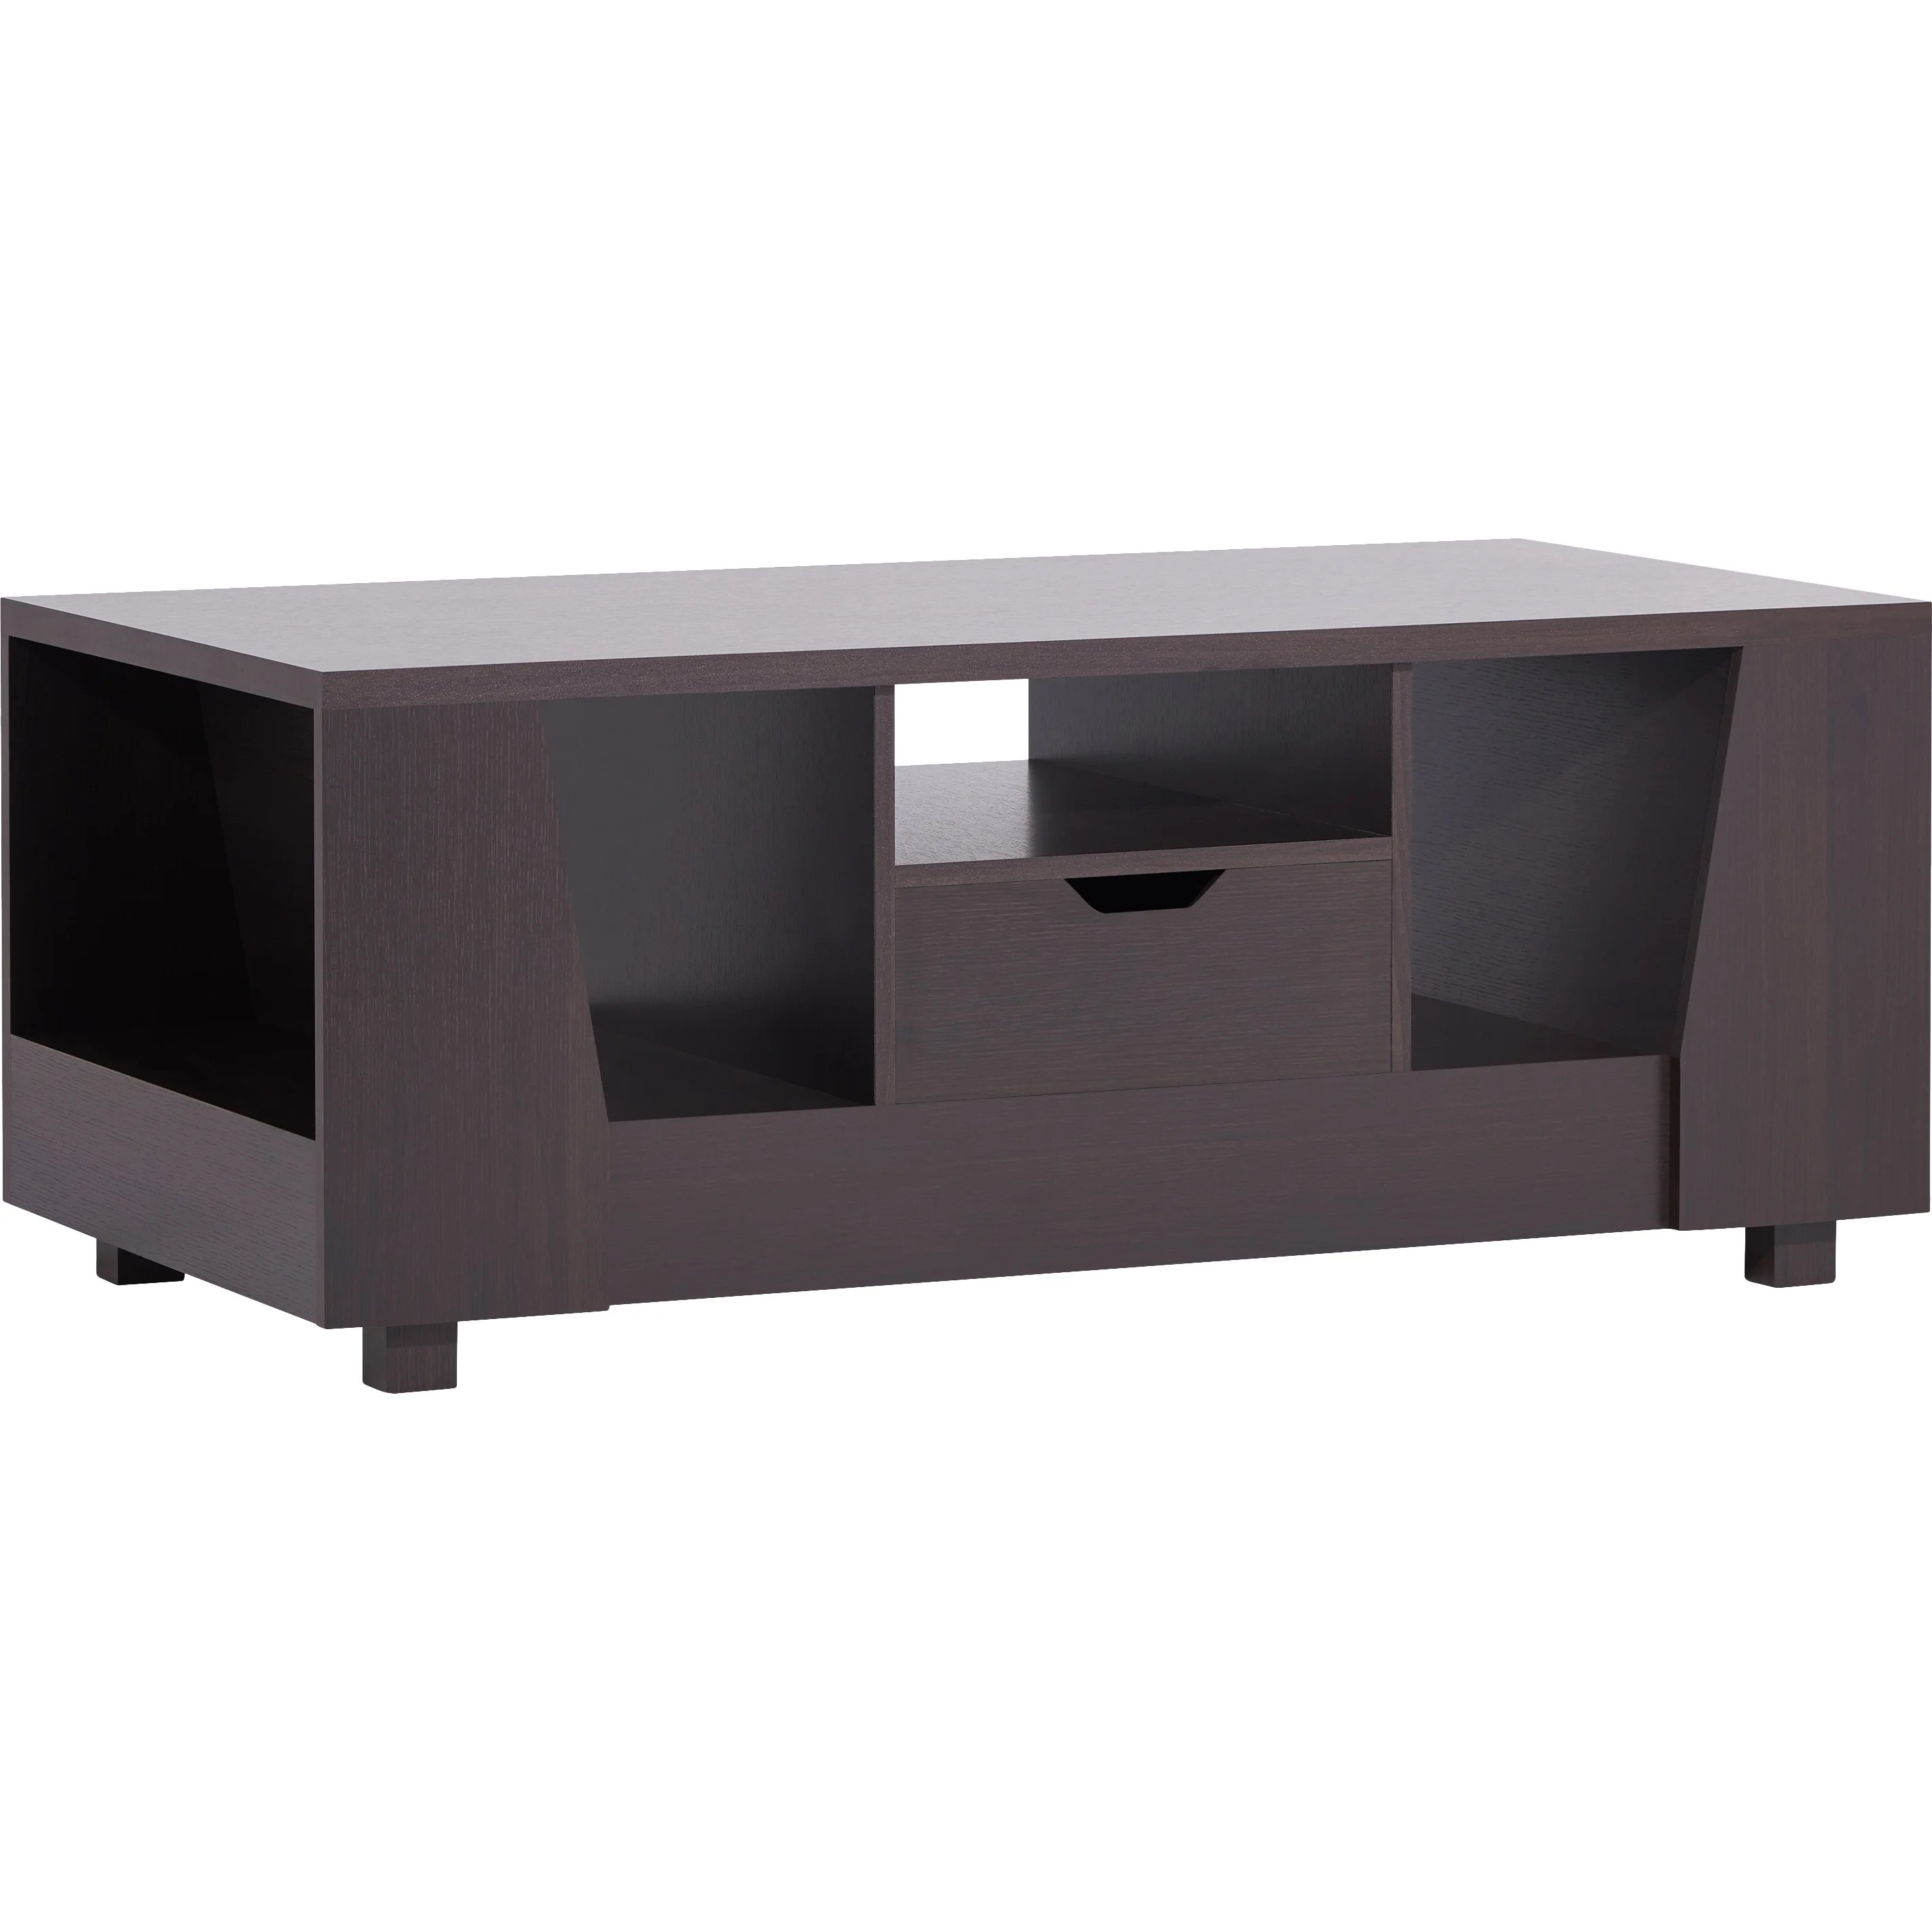 stella sofa table converts into bunk beds latitude run coffee wayfair